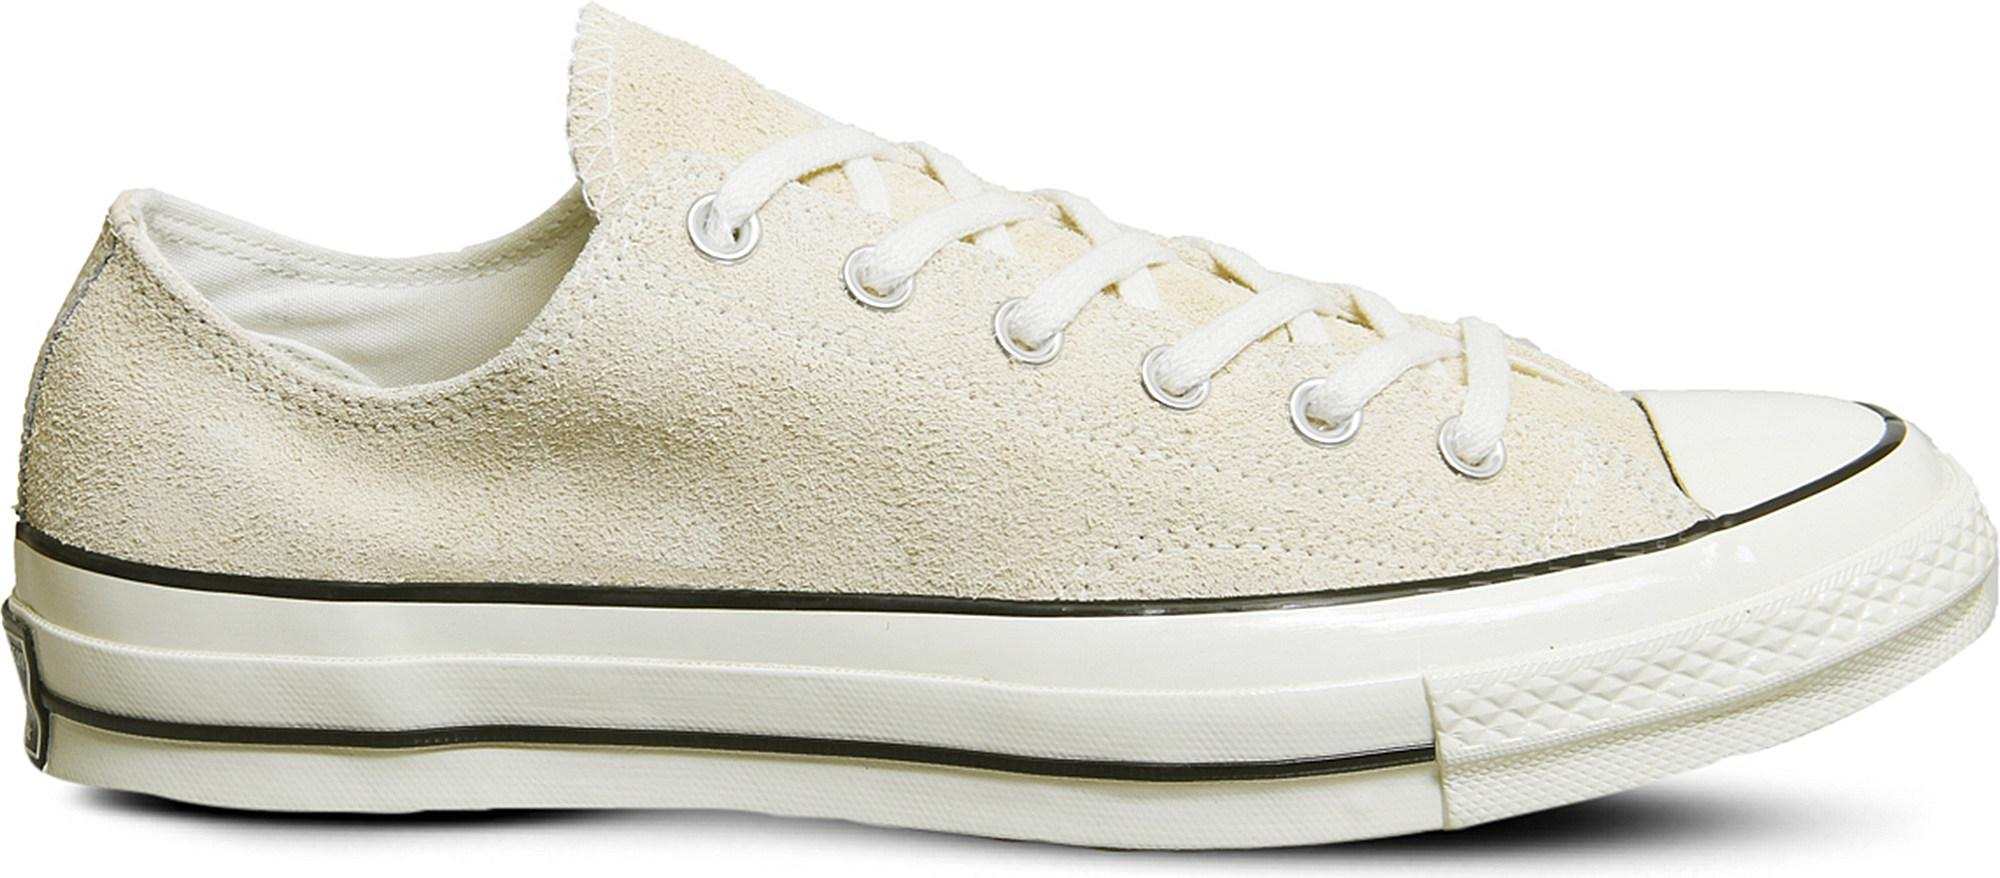 fe62ea0966bf Lyst - Converse All Star Ox 70 s Suede Low-top Trainers in White for Men